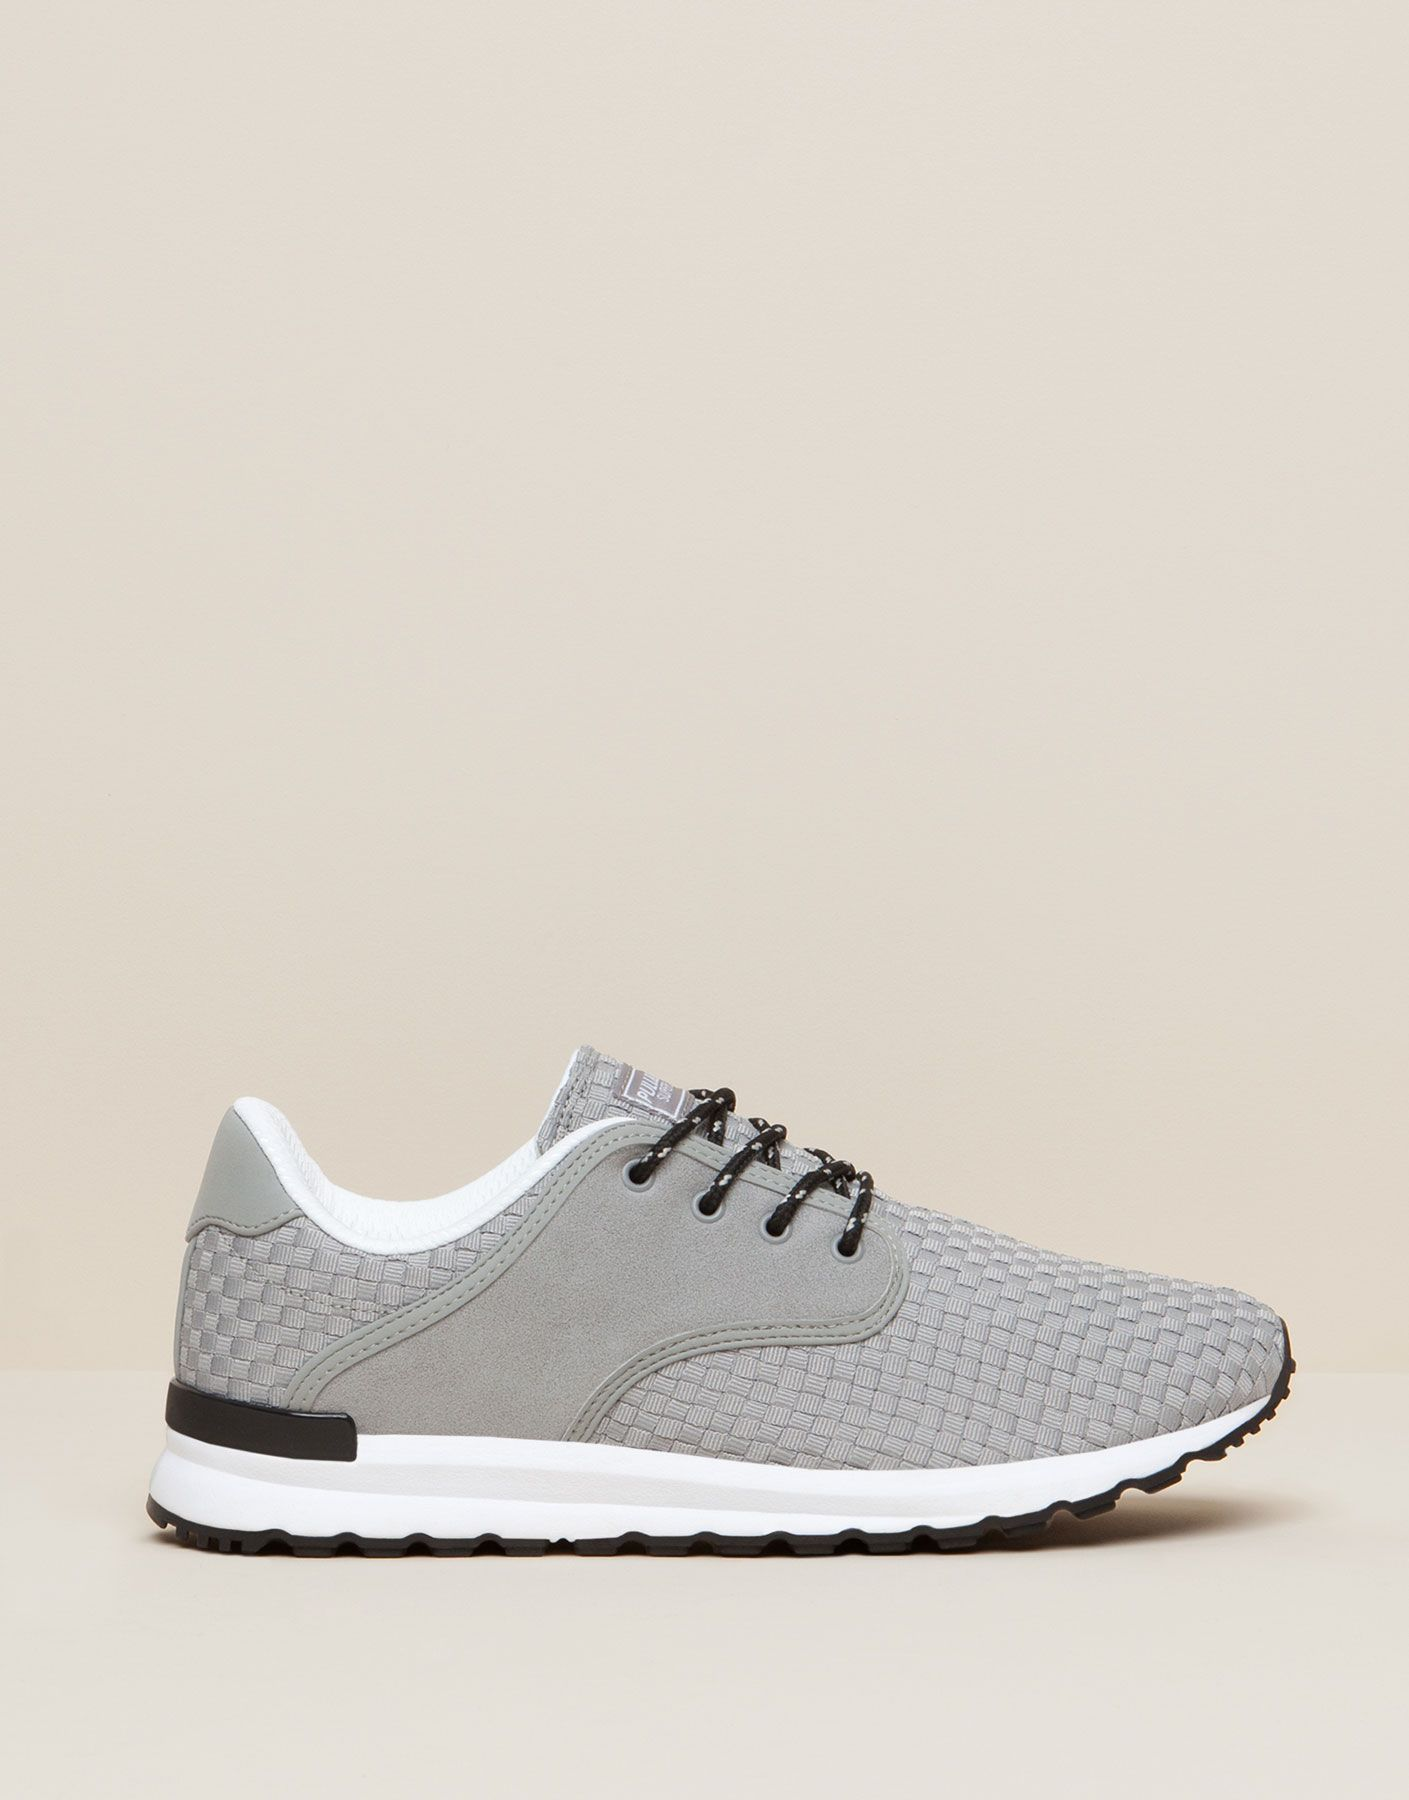 new product 48f44 597ff BASKETS TRESSAGE - FAVORIS - HOMME - PULL BEAR France